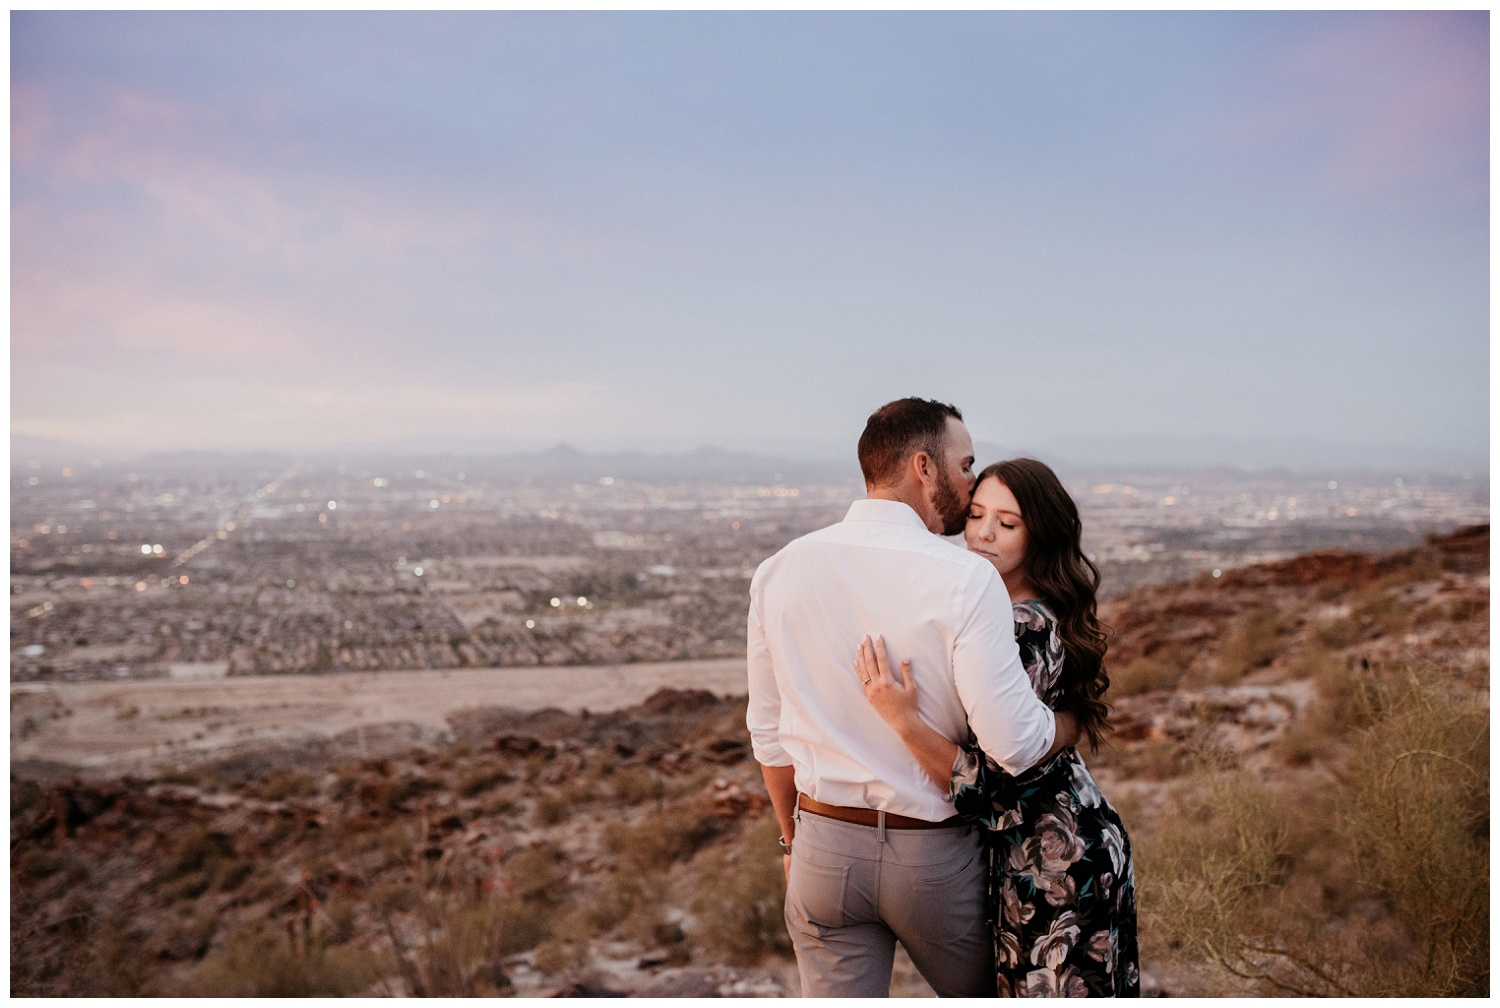 South Mountain Engagement Session Phoenix Wedding Photographer Ashtyn Nicole Photo 24